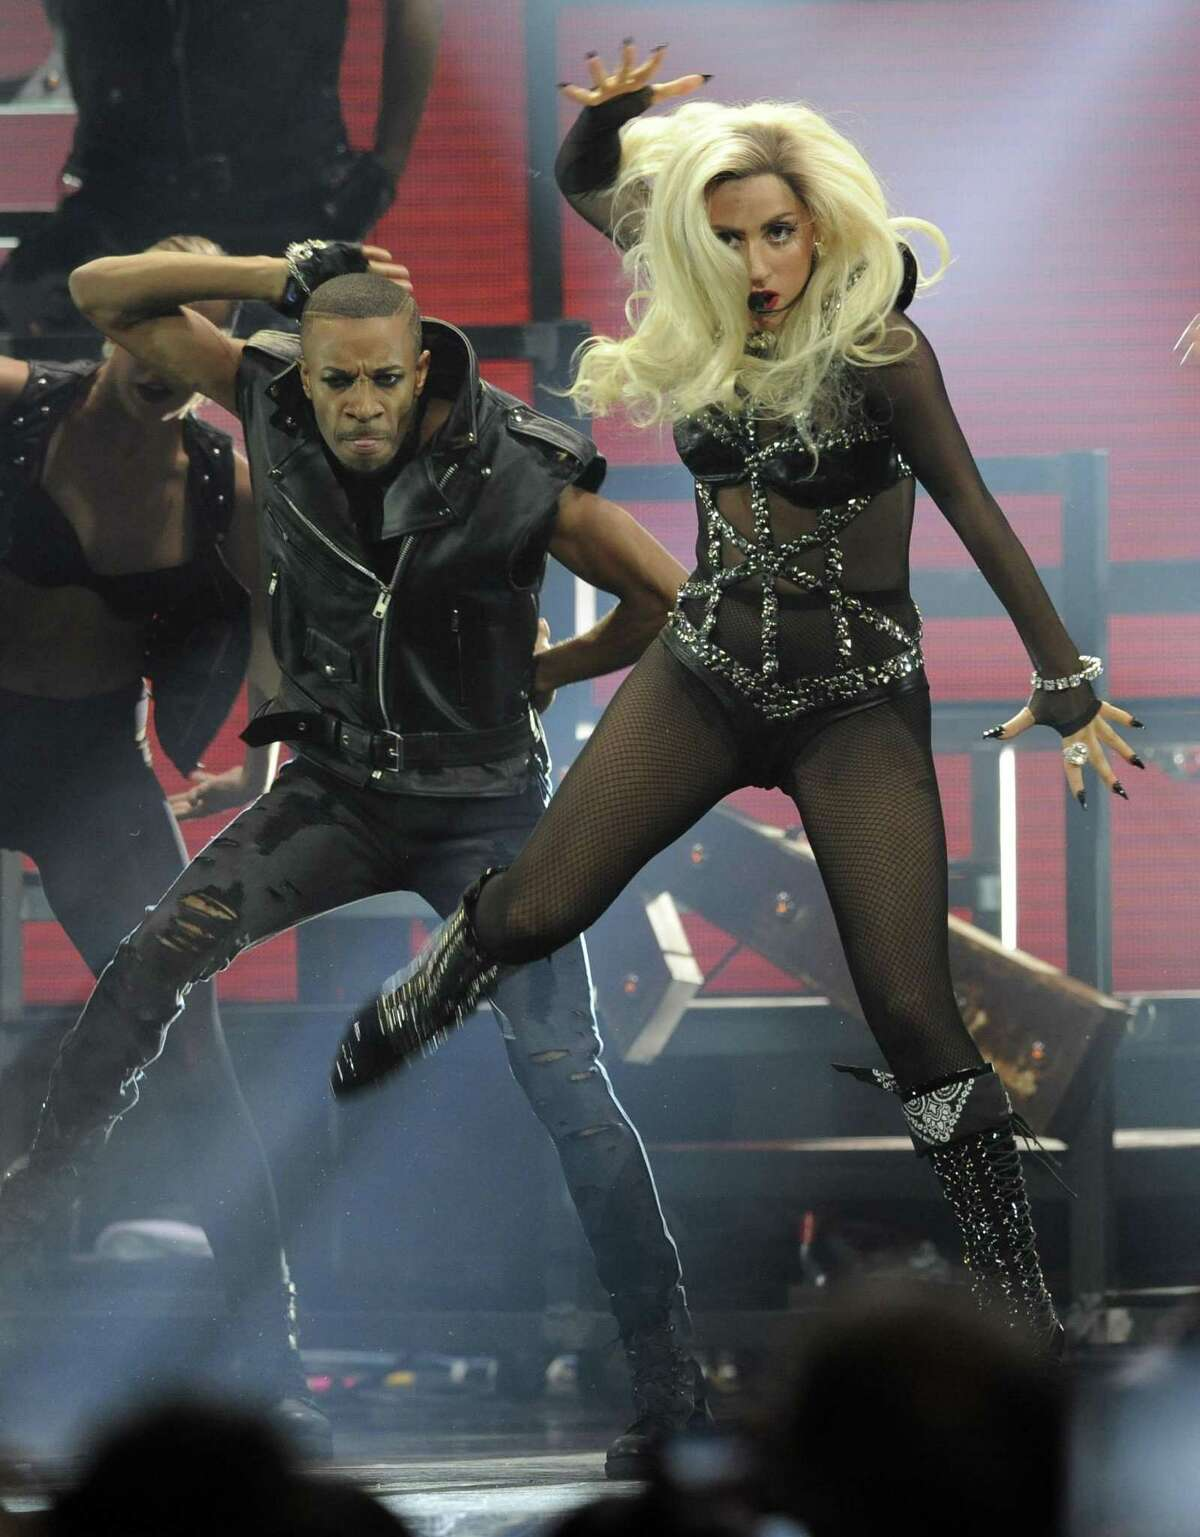 In this Sept. 24 file photo, Lady Gaga performs during the iHeartRadio music festival in Las Vegas. Lady Gaga has been voted the Associated Press Entertainer of the Year. (AP Photo/Chris Pizzello, file)